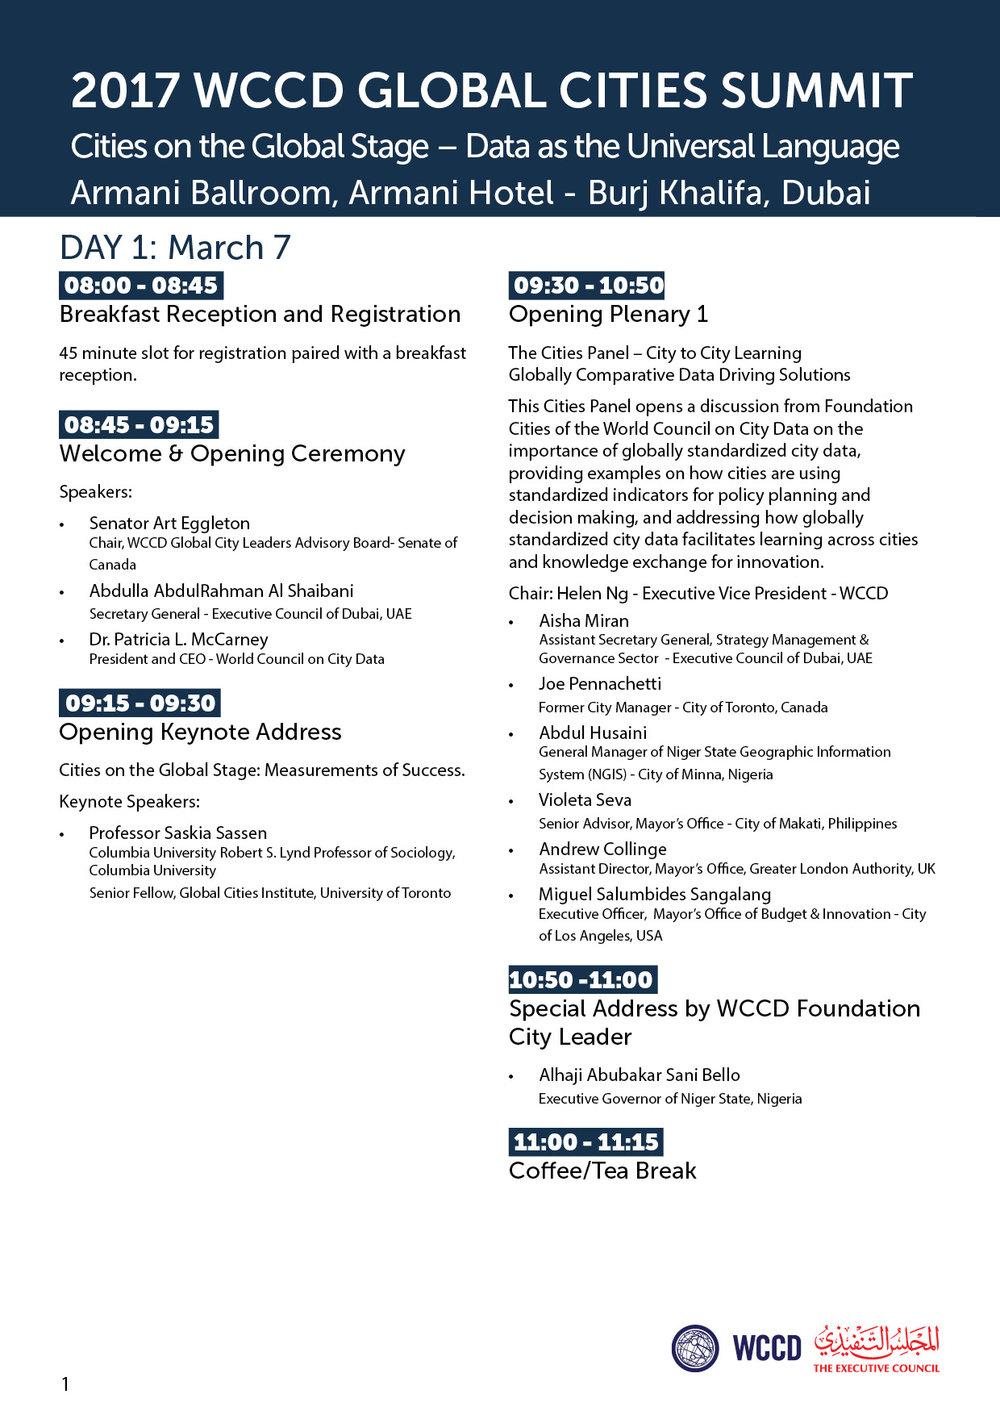 2017 WCCD Global Cities Summit Draft Agenda - Dubai-page-001 (1).jpg